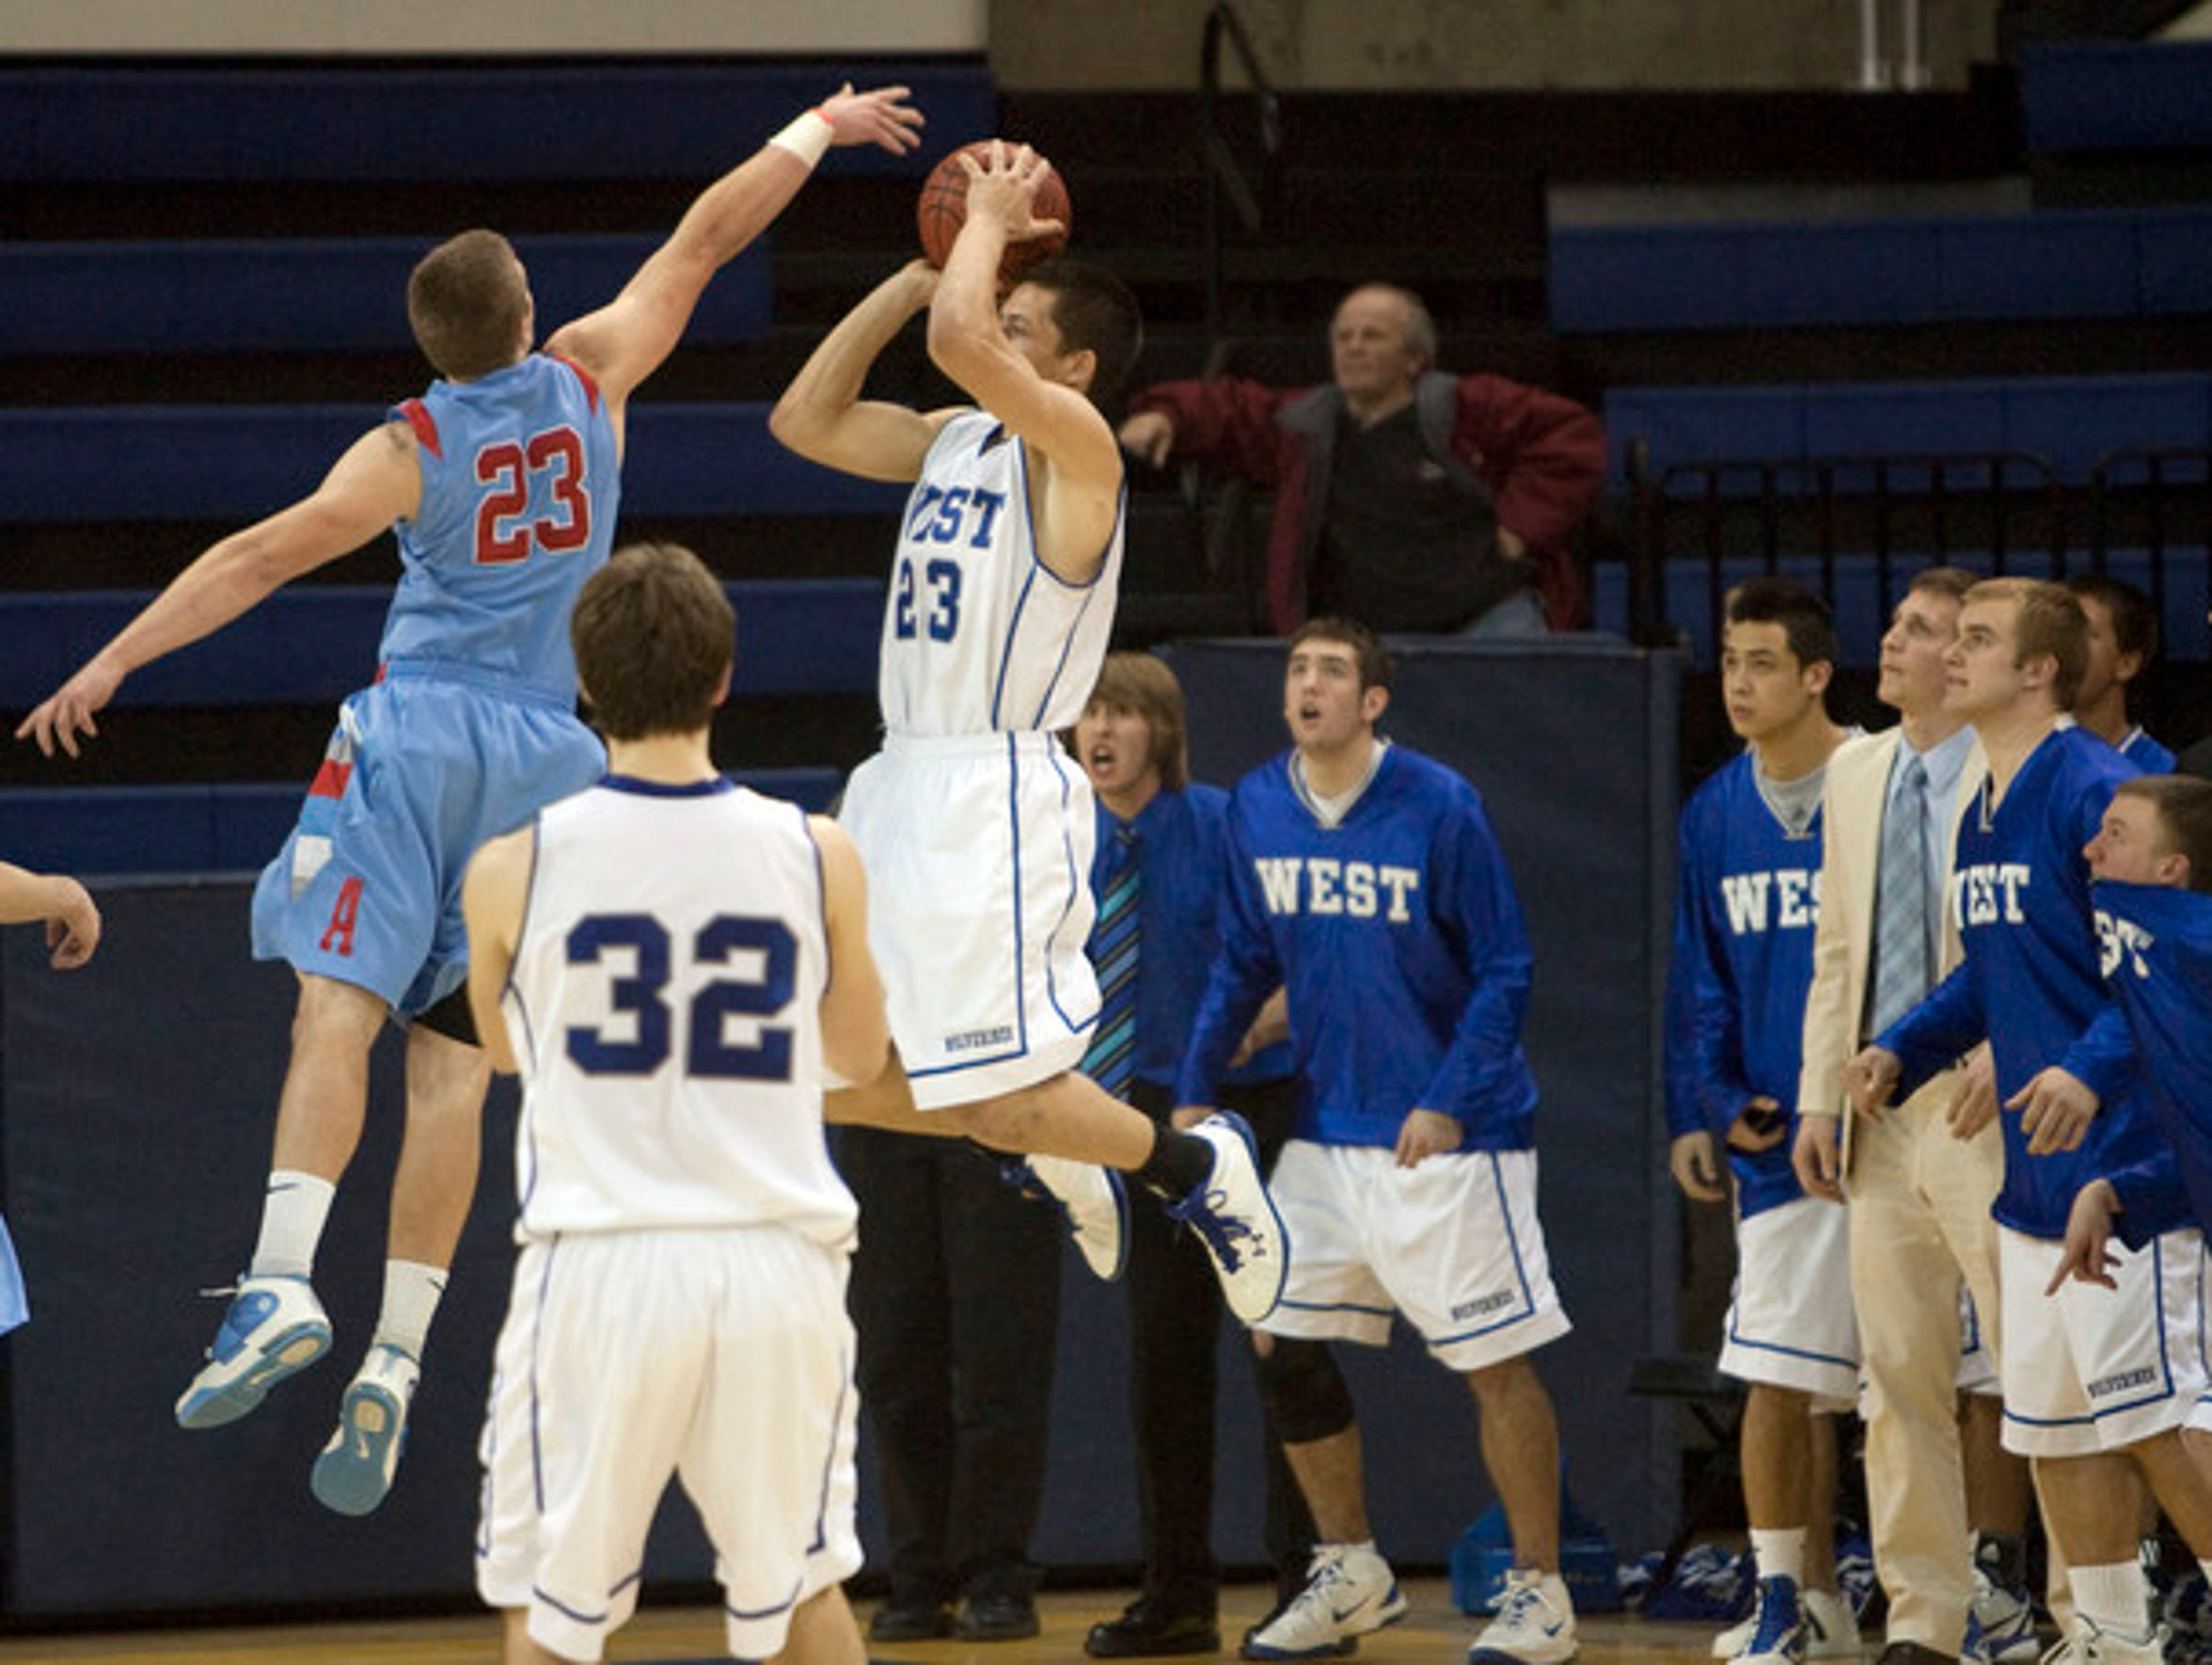 Waukesha West's Joe Schobert (23) leaps up for a last-second